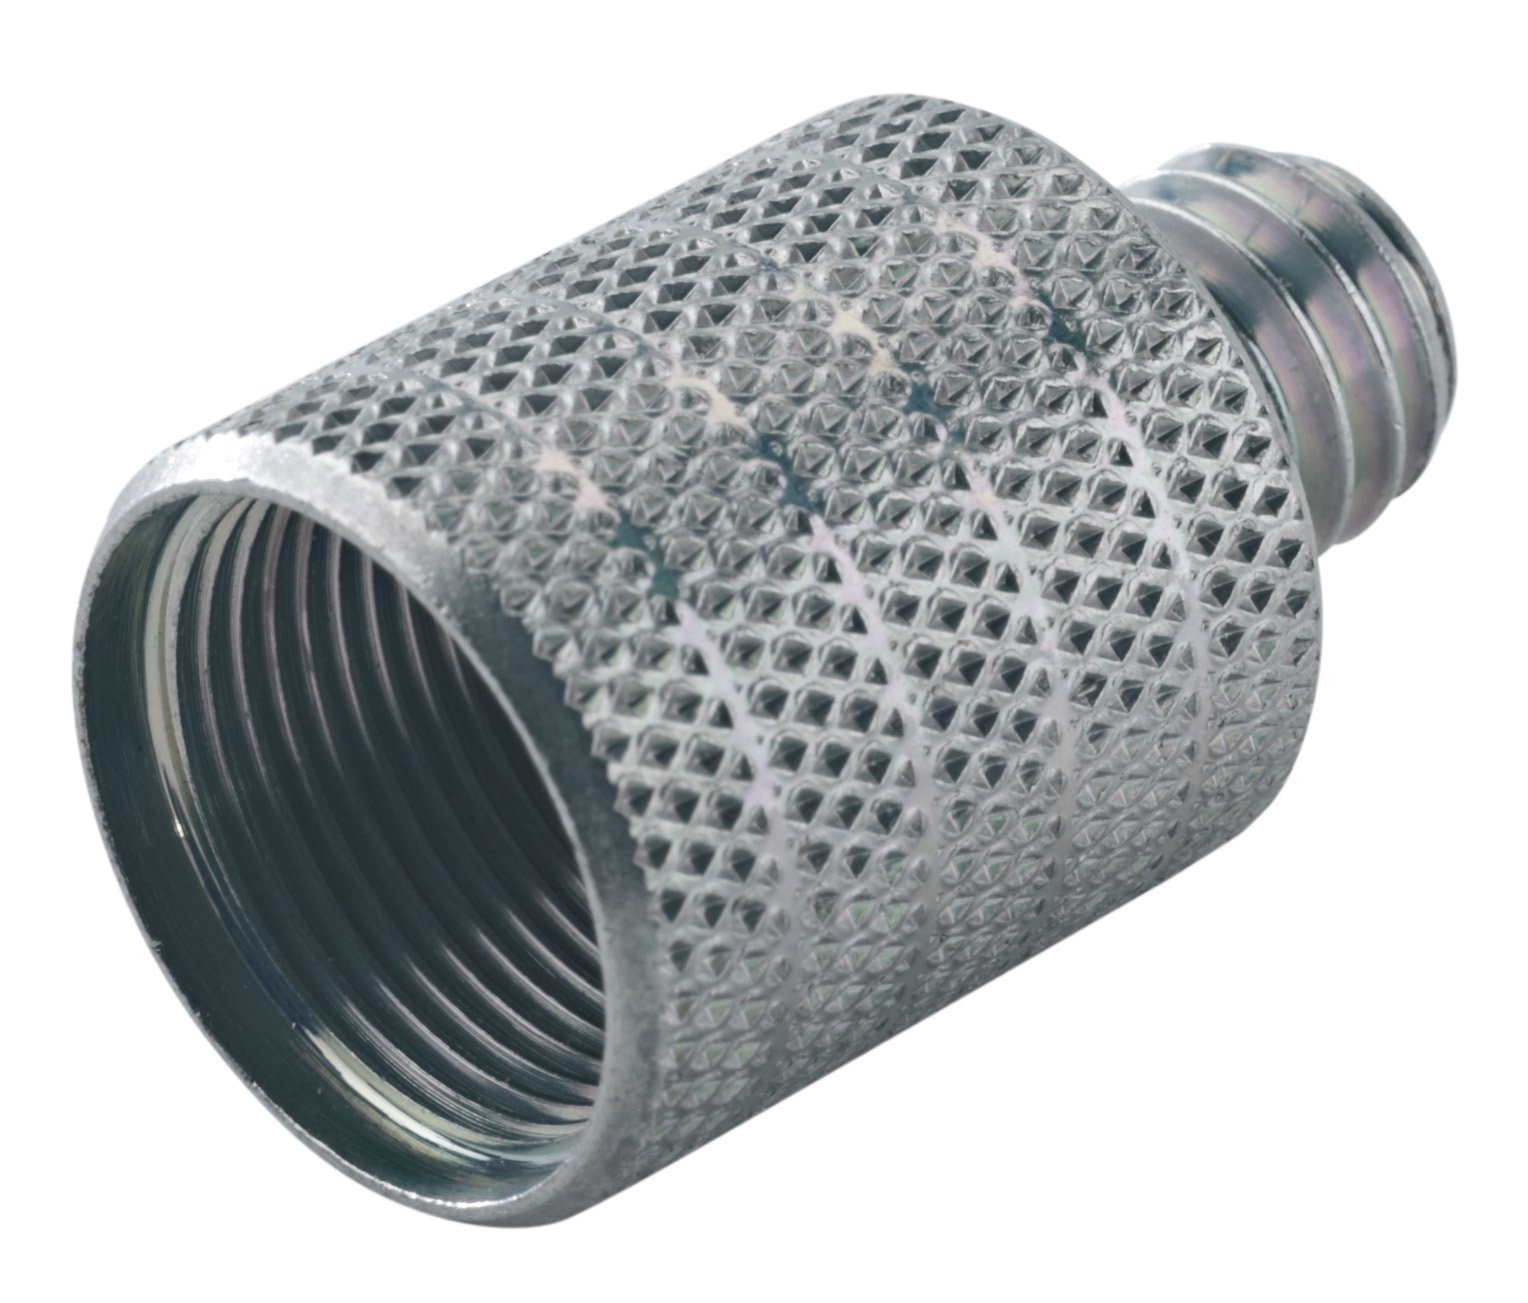 """Zinc-Plated Threaded Mic Stand Adapter with Knurled Surface, 5/8"""" 27 Gauge Female to 3/8"""" Male"""